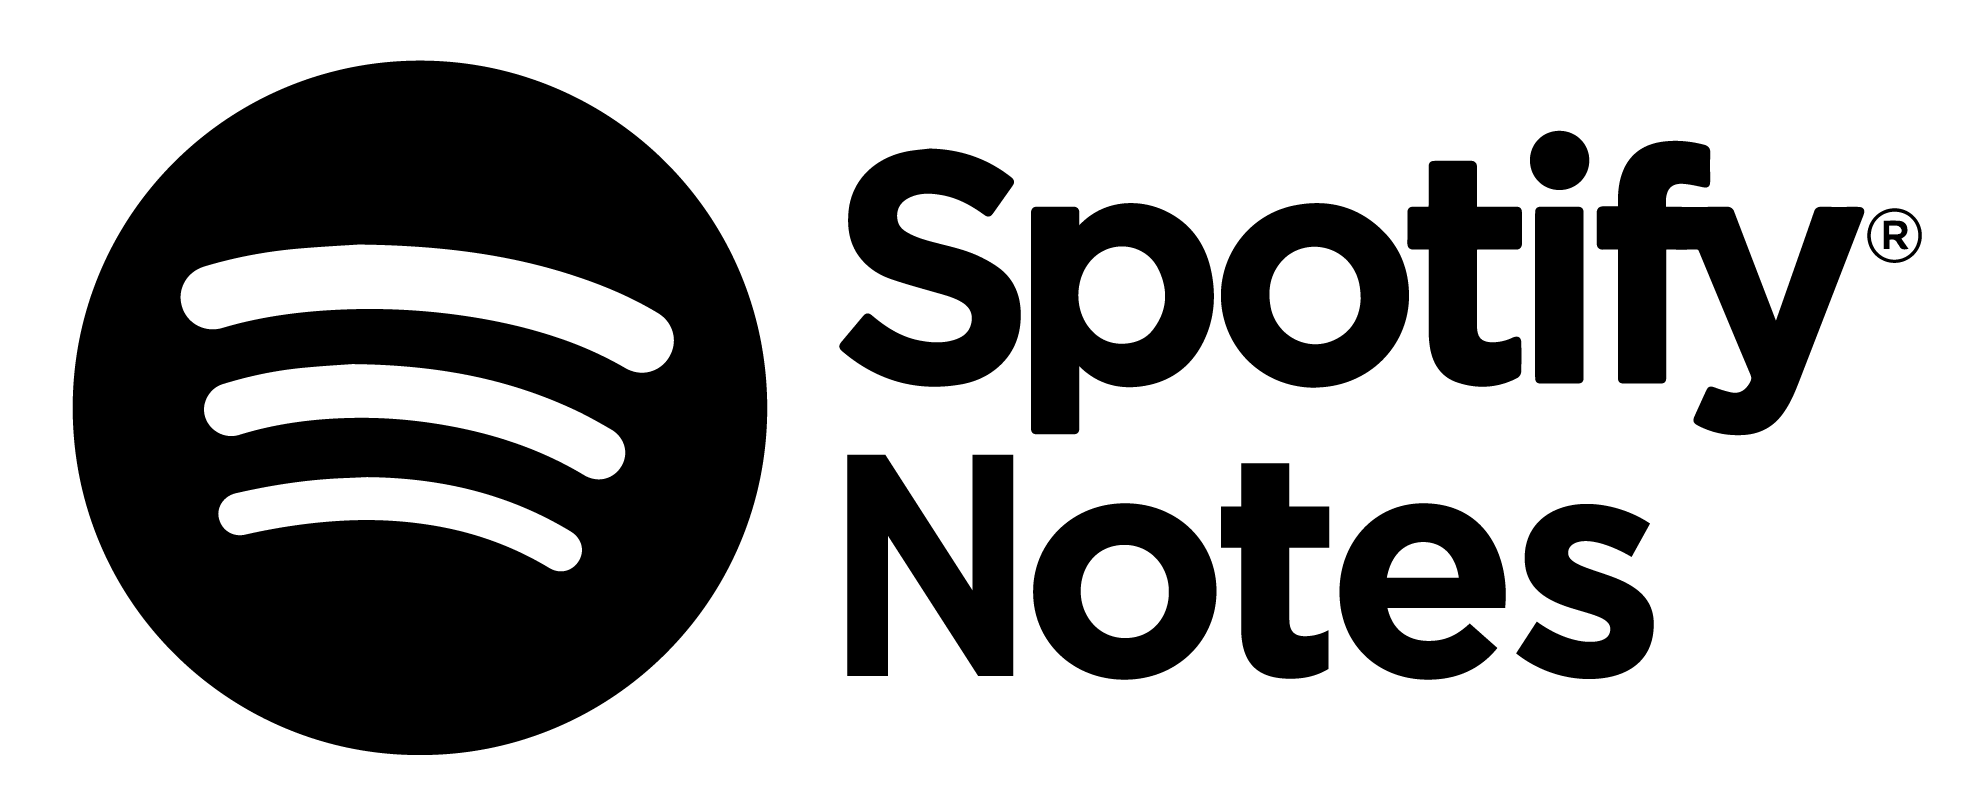 noteslogo.png